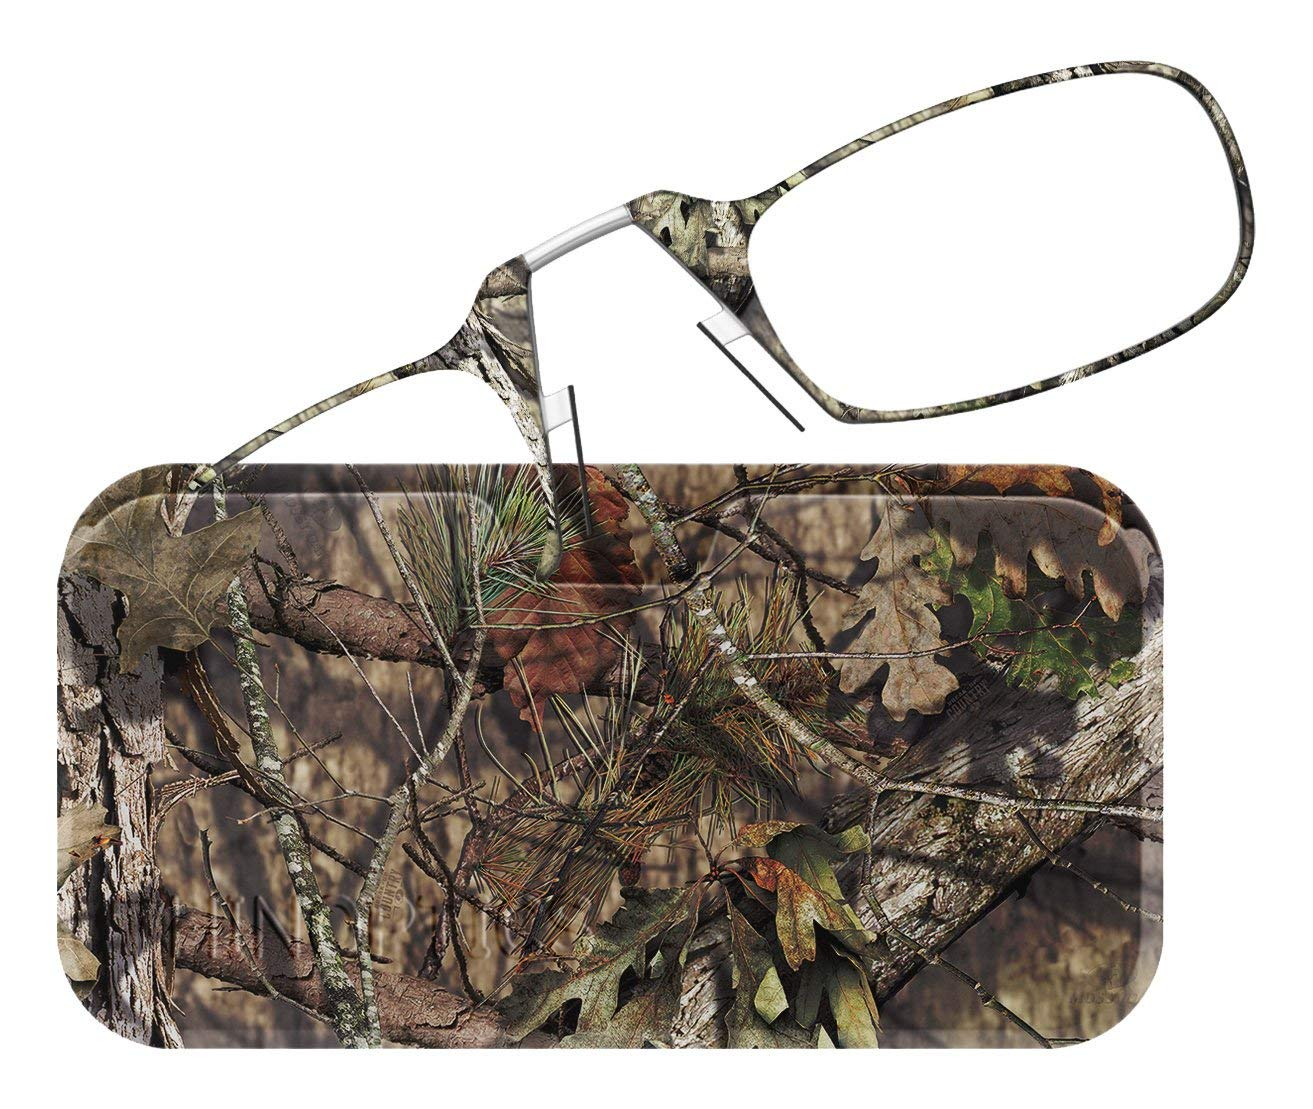 67d0a7605bb1 Get Quotations · ThinOptics Reading Glasses + Universal Pod Case |  Camouflage Collection, Mossy Oak Break-Up